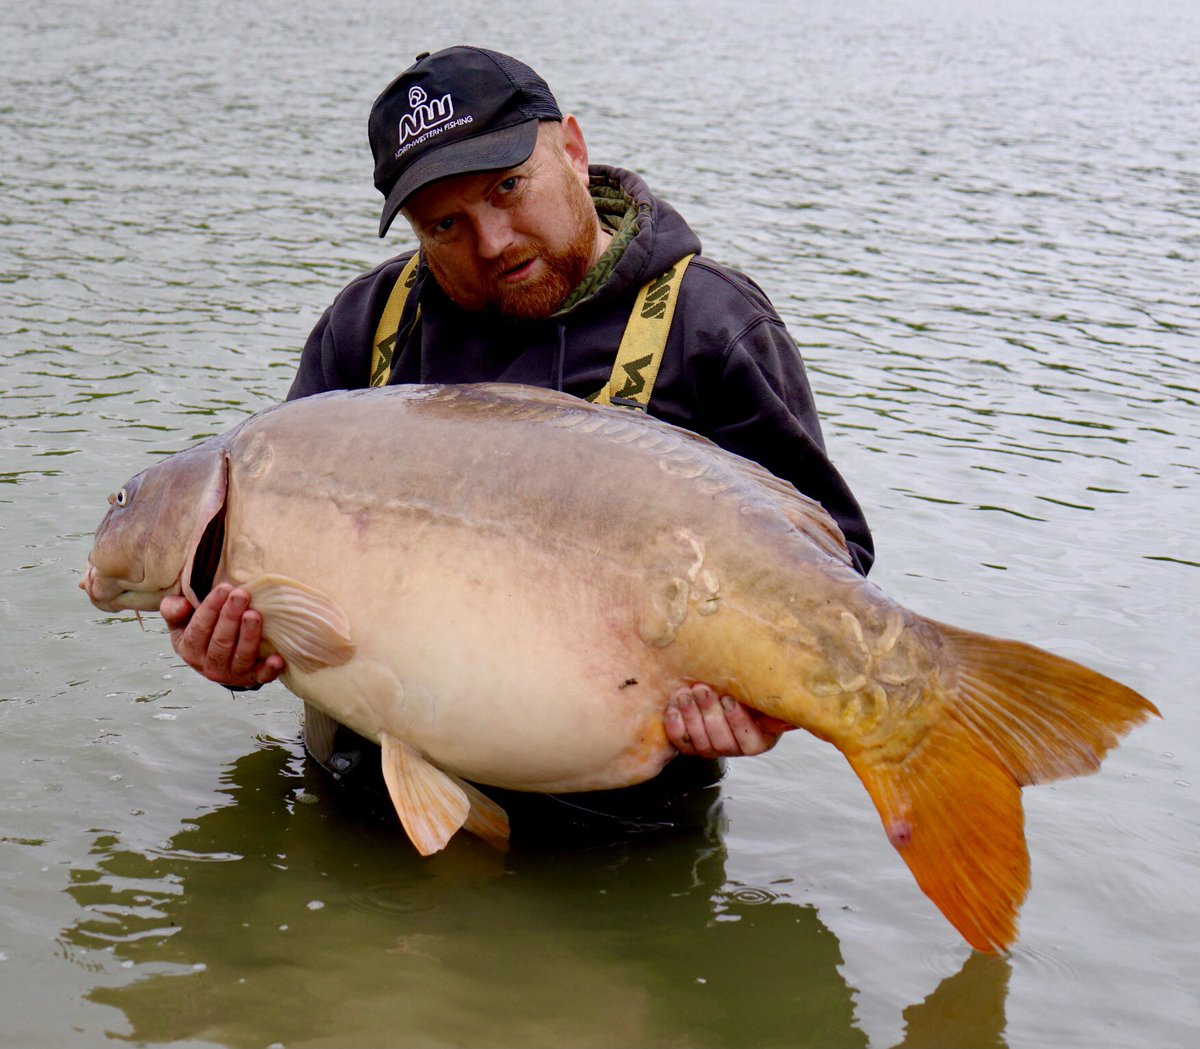 How do you like them apples #fishing #<b>Carpy</b> #carpfishing https://t.co/AttzqojYMy